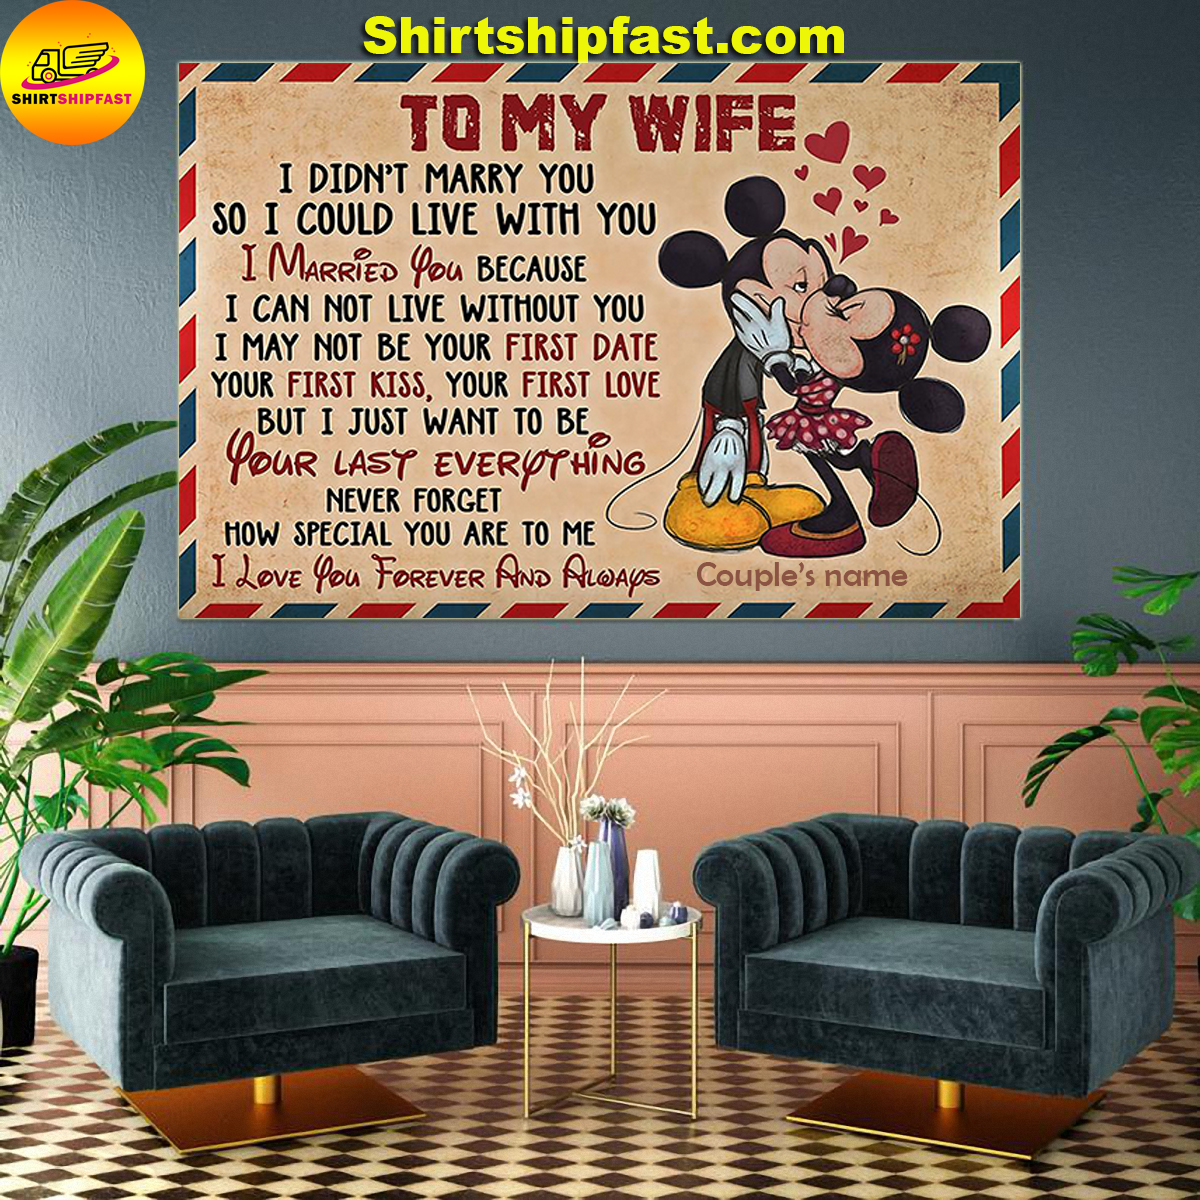 Mickey and Minnie To my wife how special you are to me personalized poster - Picture 3